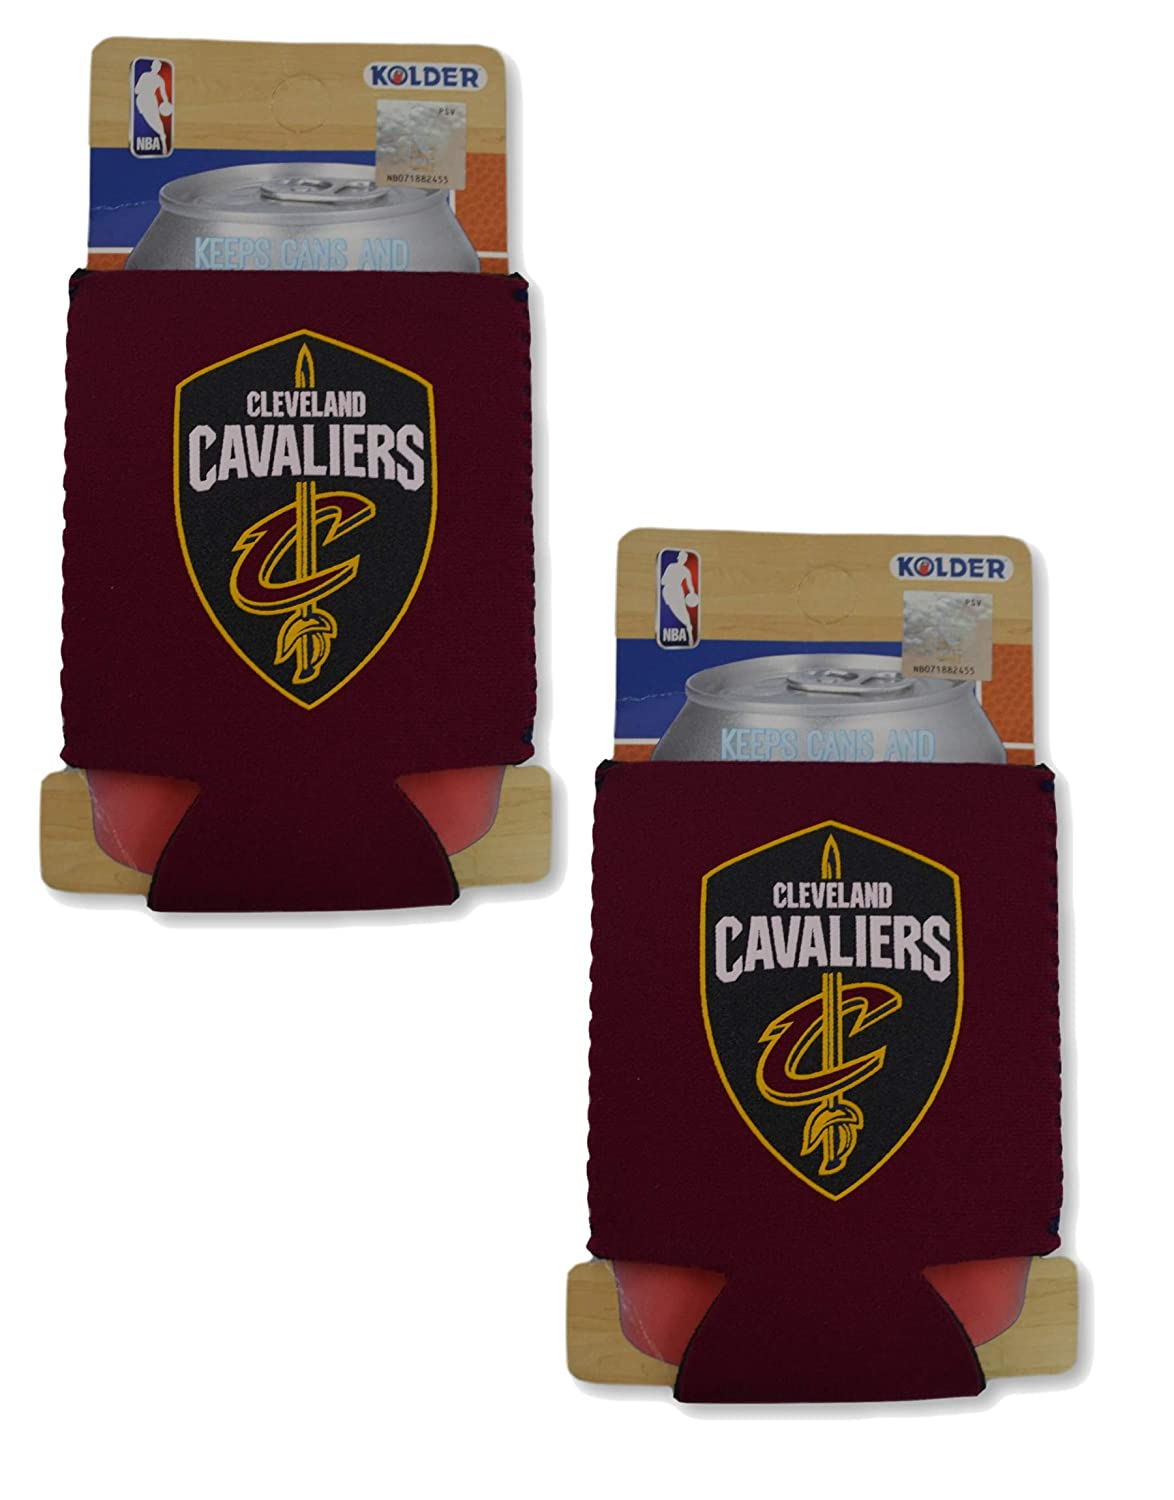 NBAファンショップAuthentic 2 - Pack Insulated 12 oz Cold Can Cooler /ホルダー。Showチームプライド自宅で、Tailgatingやゲームで。GREAT forファン  クリーブランドキャバリアーズ B06XH6PGV7